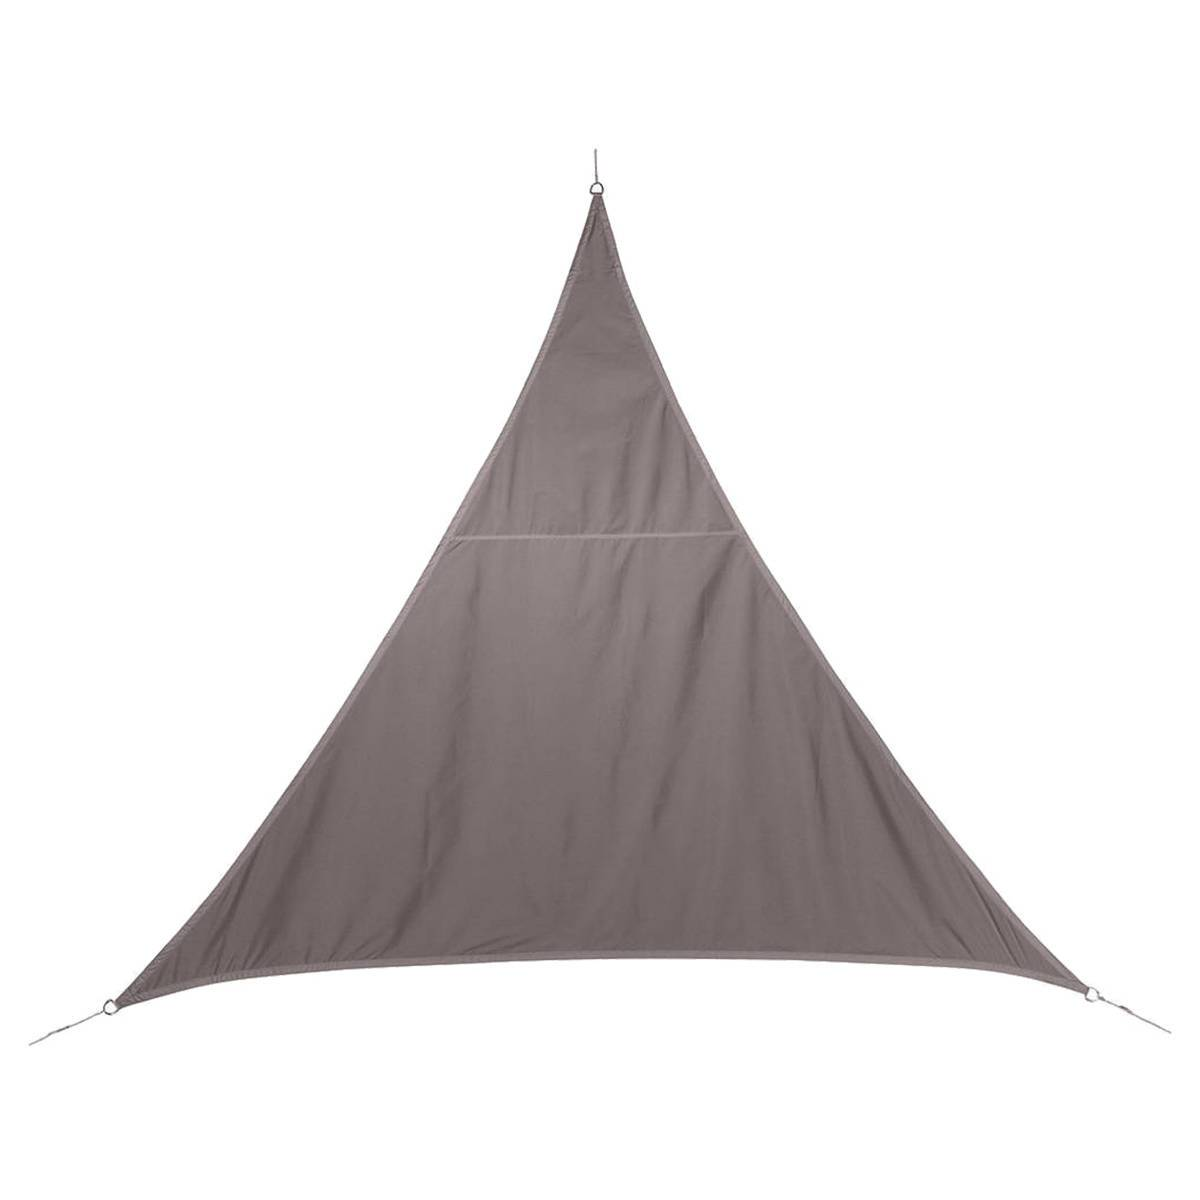 Hespéride Voile d'ombrage triangulaire Curacao Taupe Jardin 4 x 4 x 4 m - Polyester